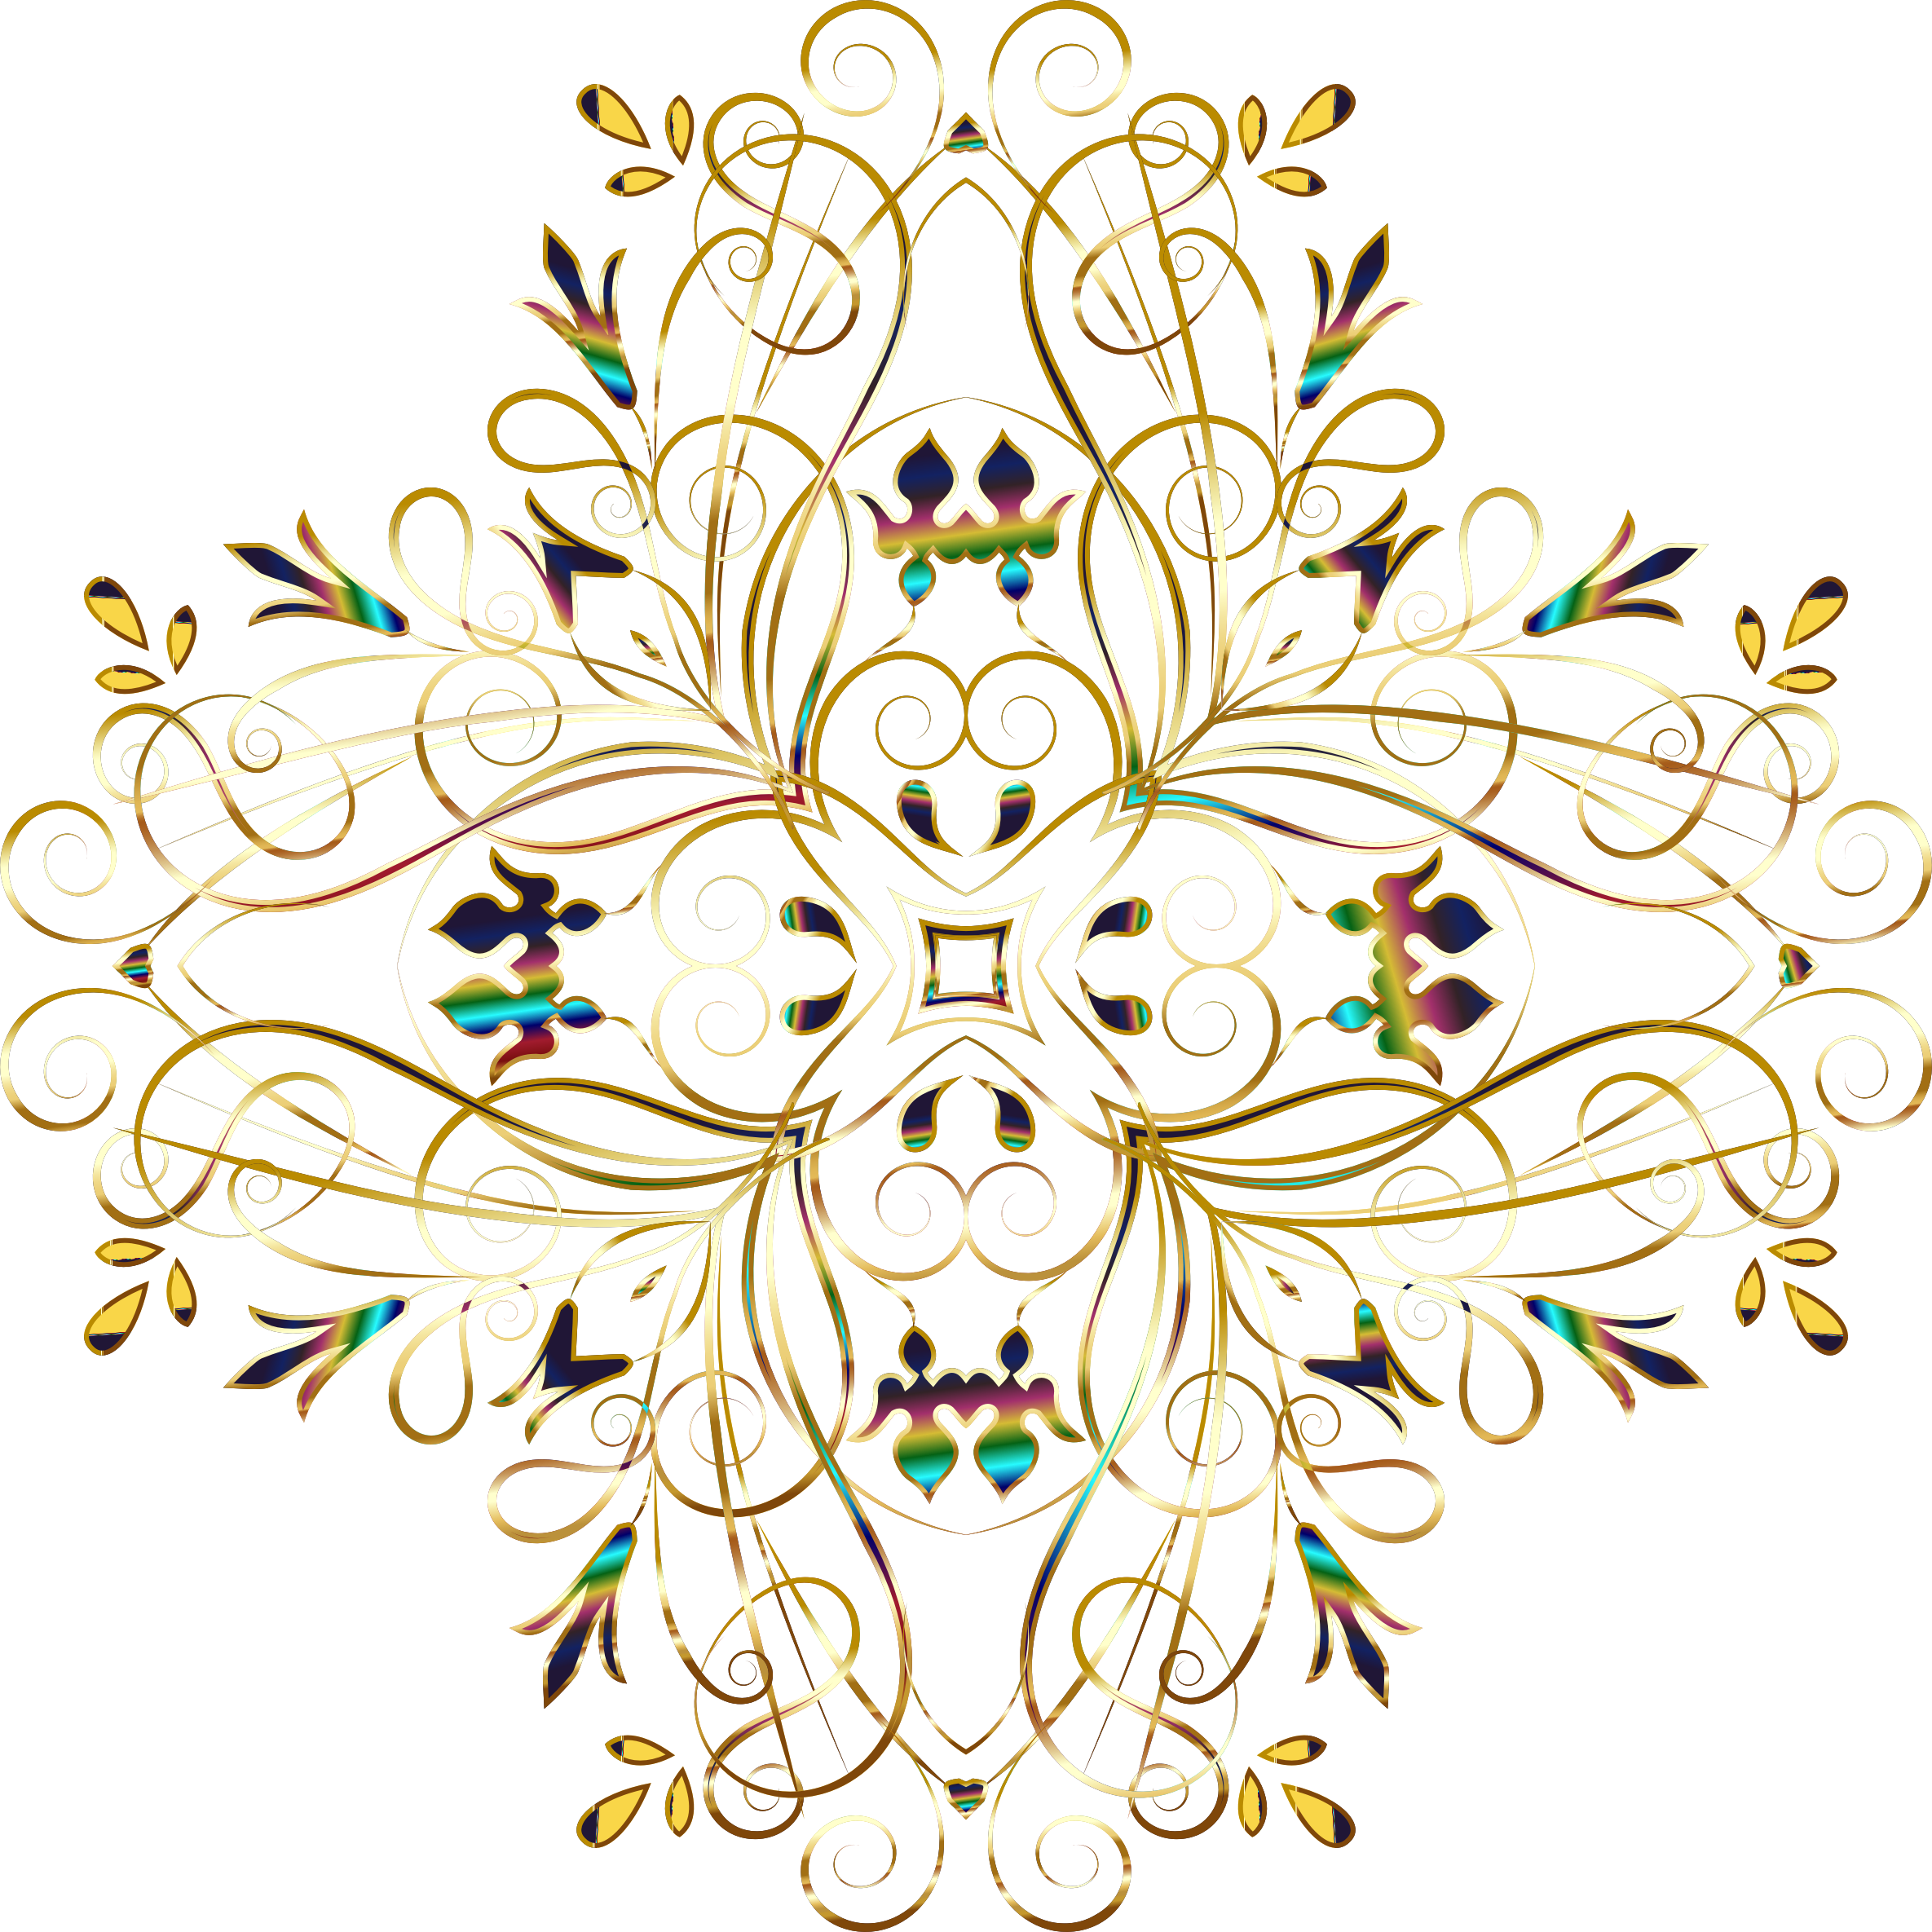 Flourishy Floral Design 11 Variation 1 No Background by GDJ